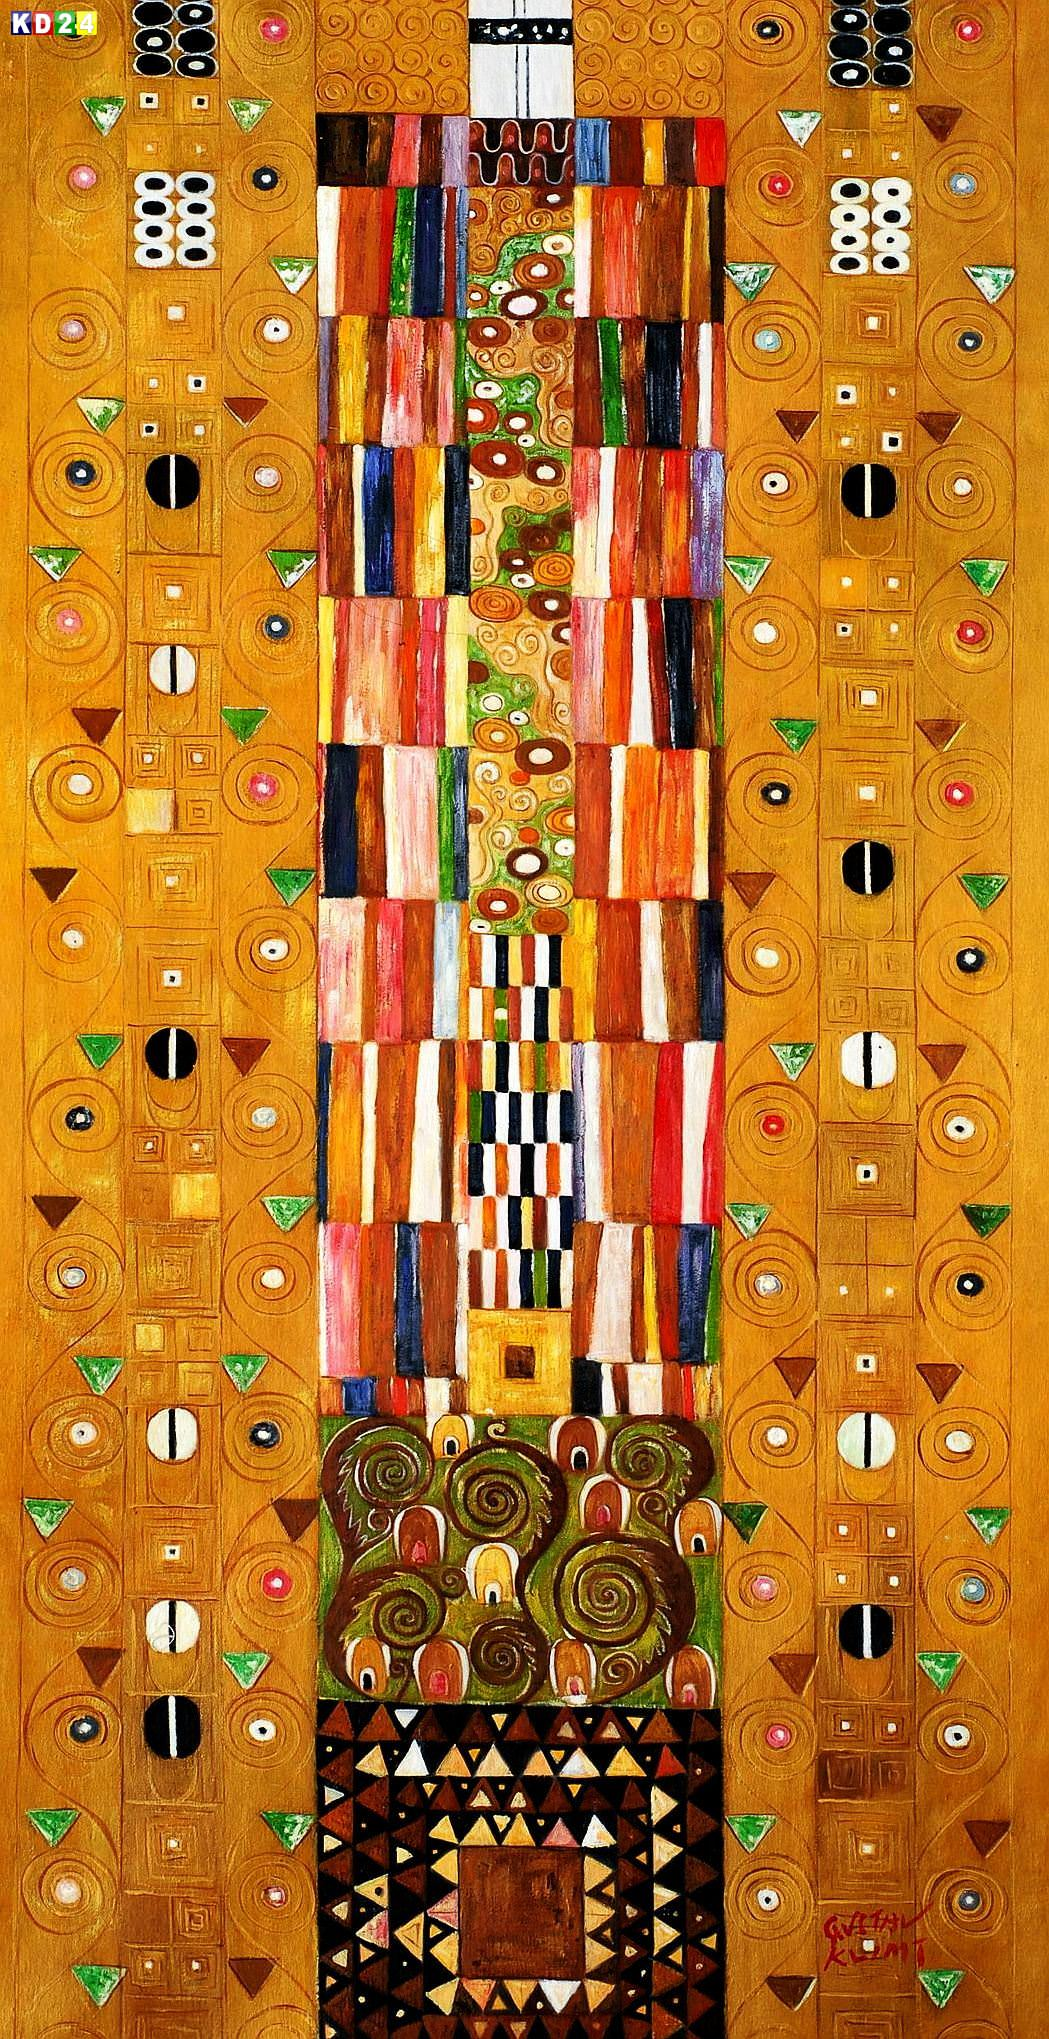 Gustav Klimt - Pattern for the Stoclet Frieze f83504 60x120cm meisterhaftes Ölgemälde Jugendstil Museumsqualität